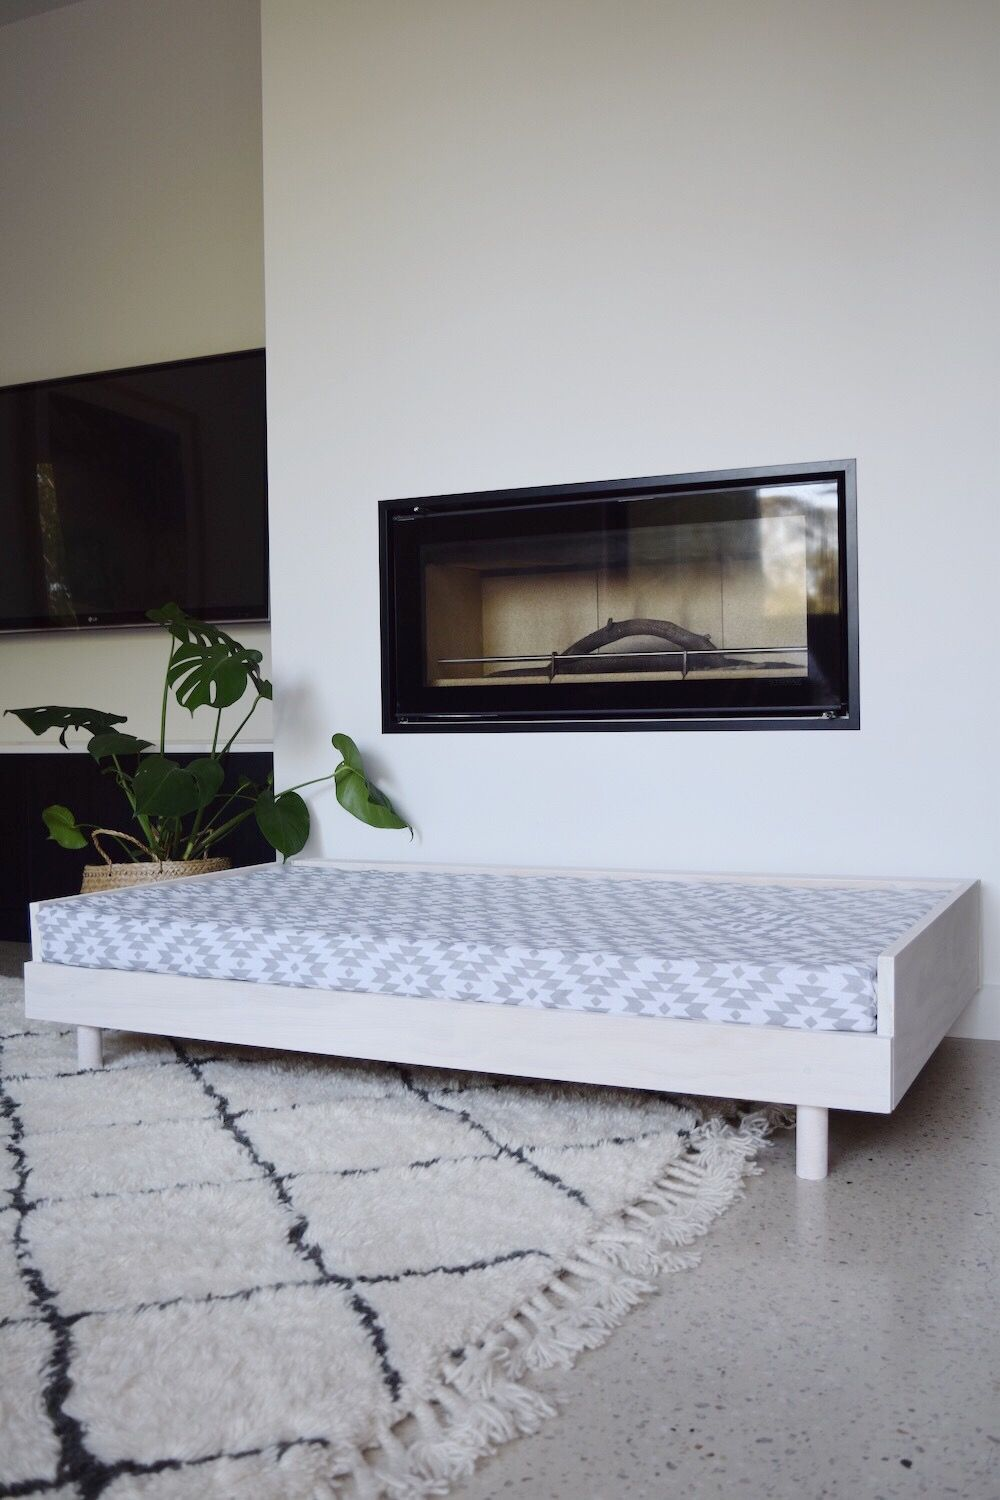 diy scandinavian style large dog bed (or toddler day bed